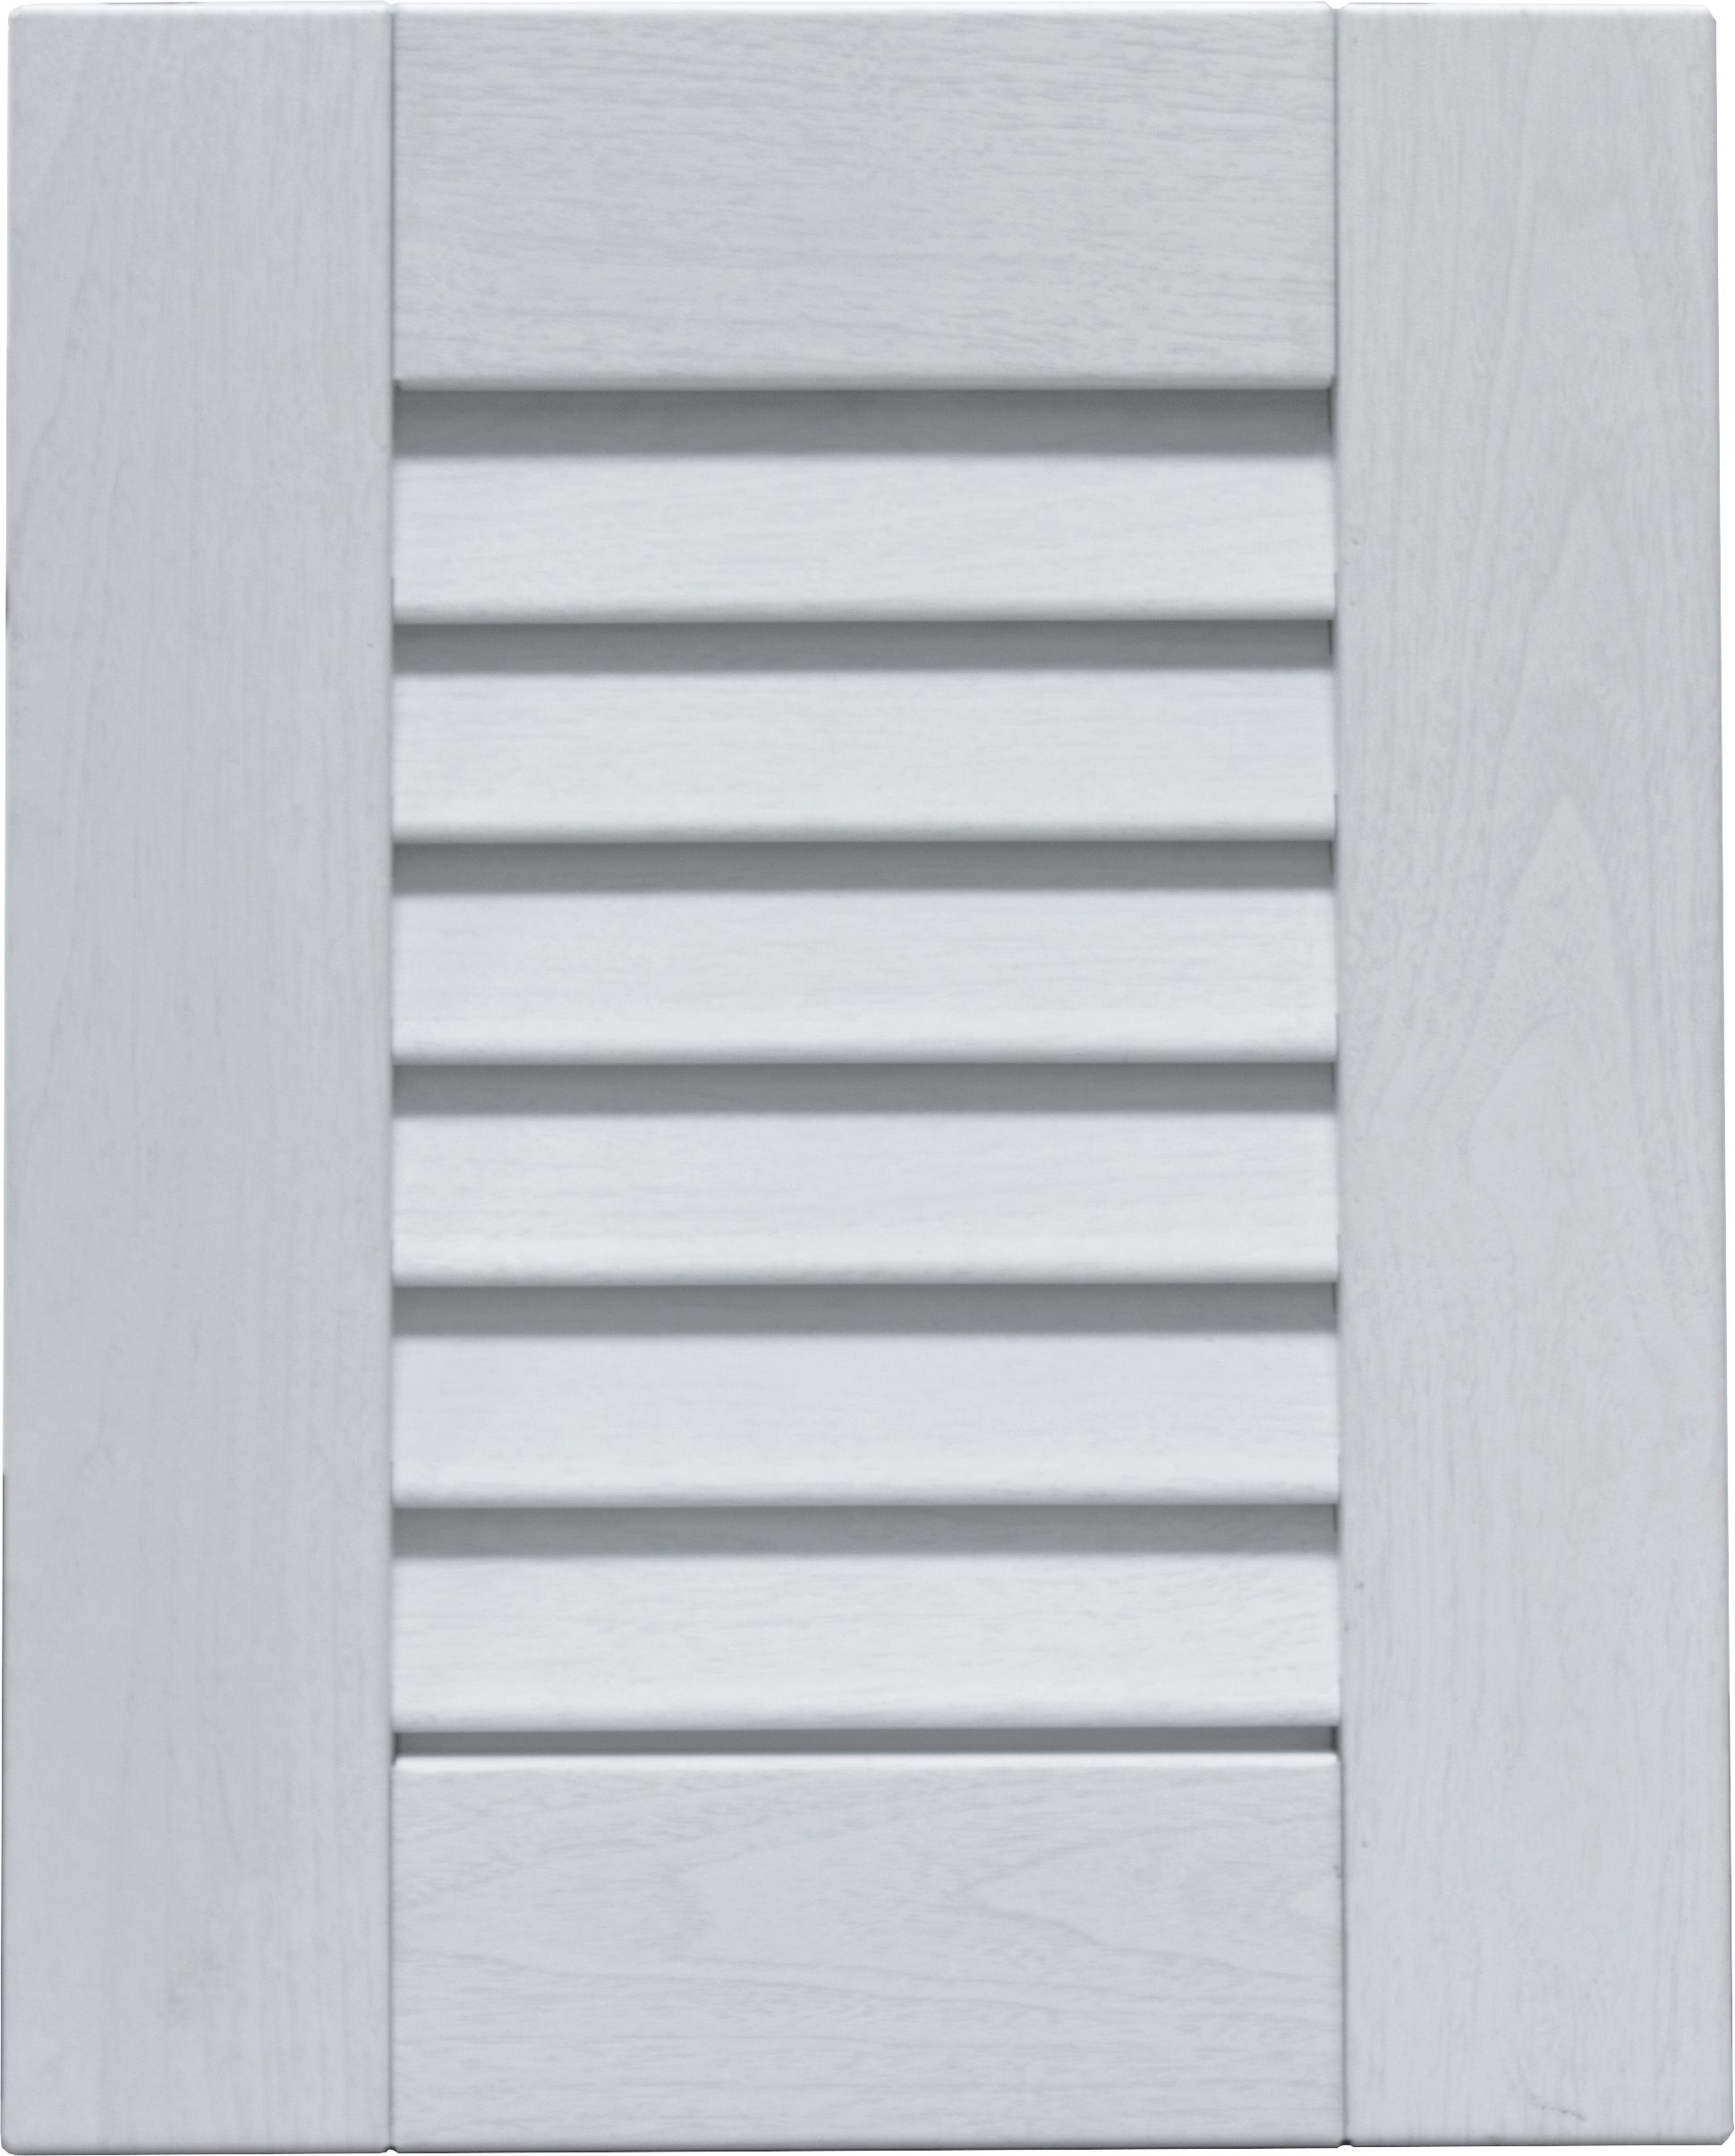 Louver Door Style In White Washed Wood Woodgrain Powder Coat Finish Stainless Steel Cabinets Outdoor Kitchen Kitchen Doors